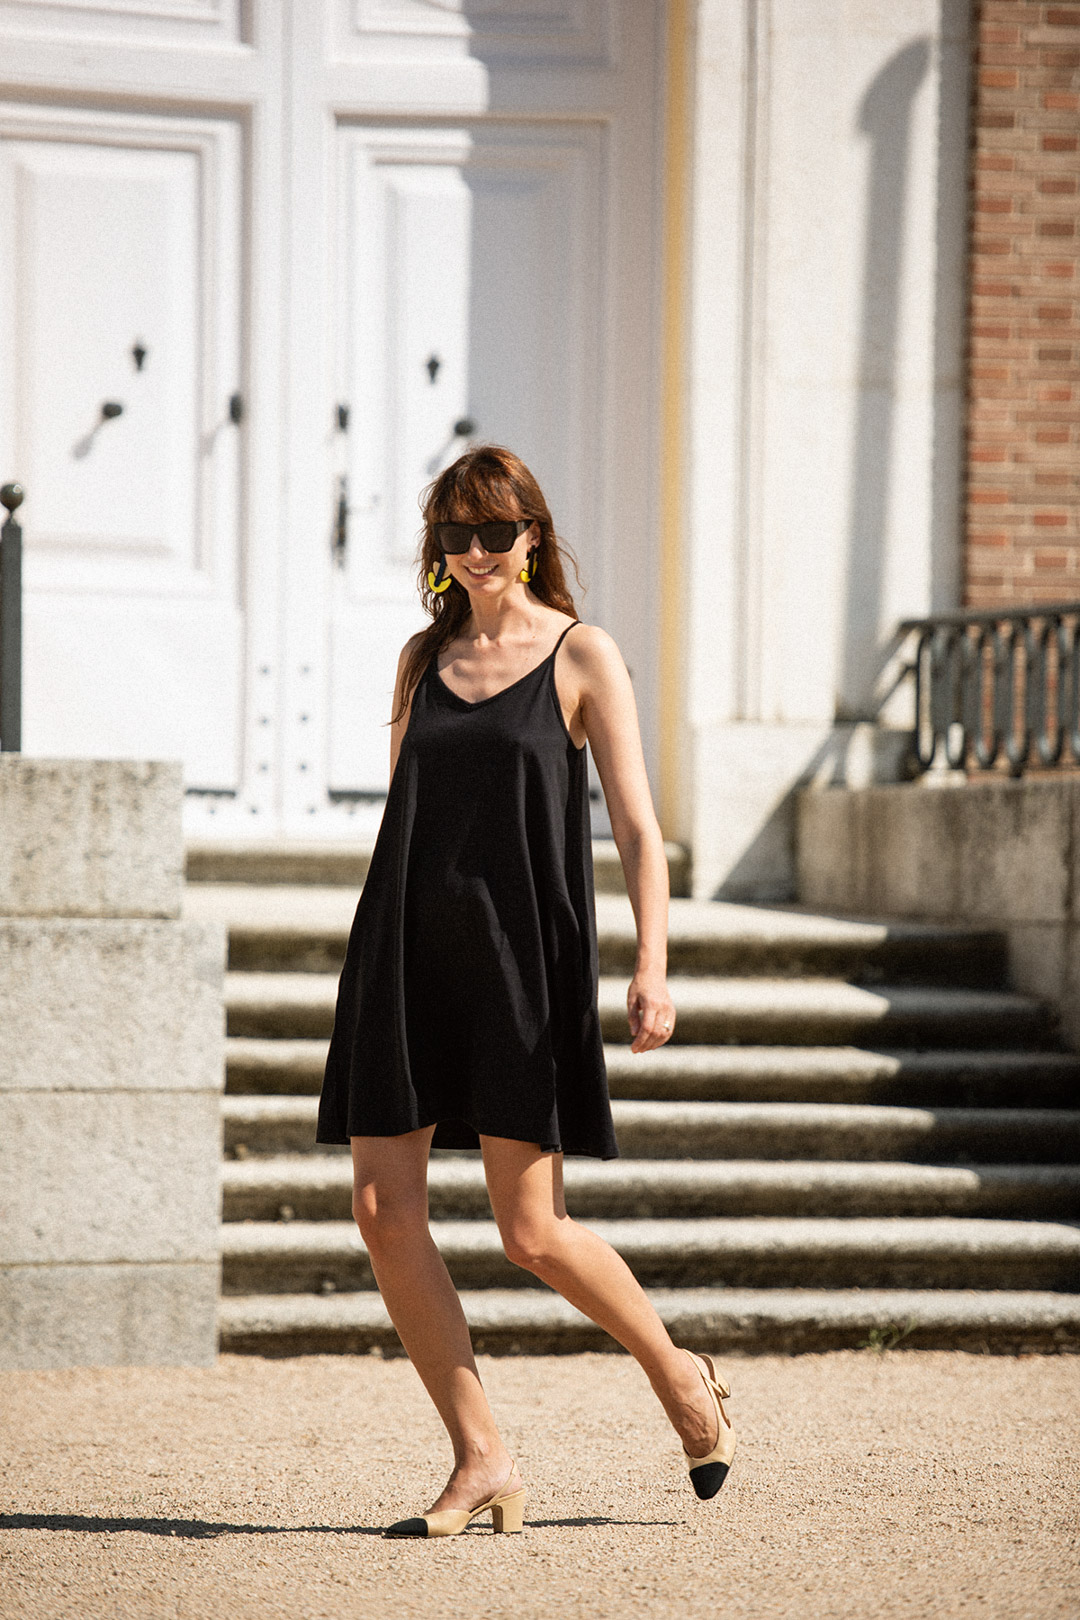 black-dress-summer-mayte-de-la-iglesia-7